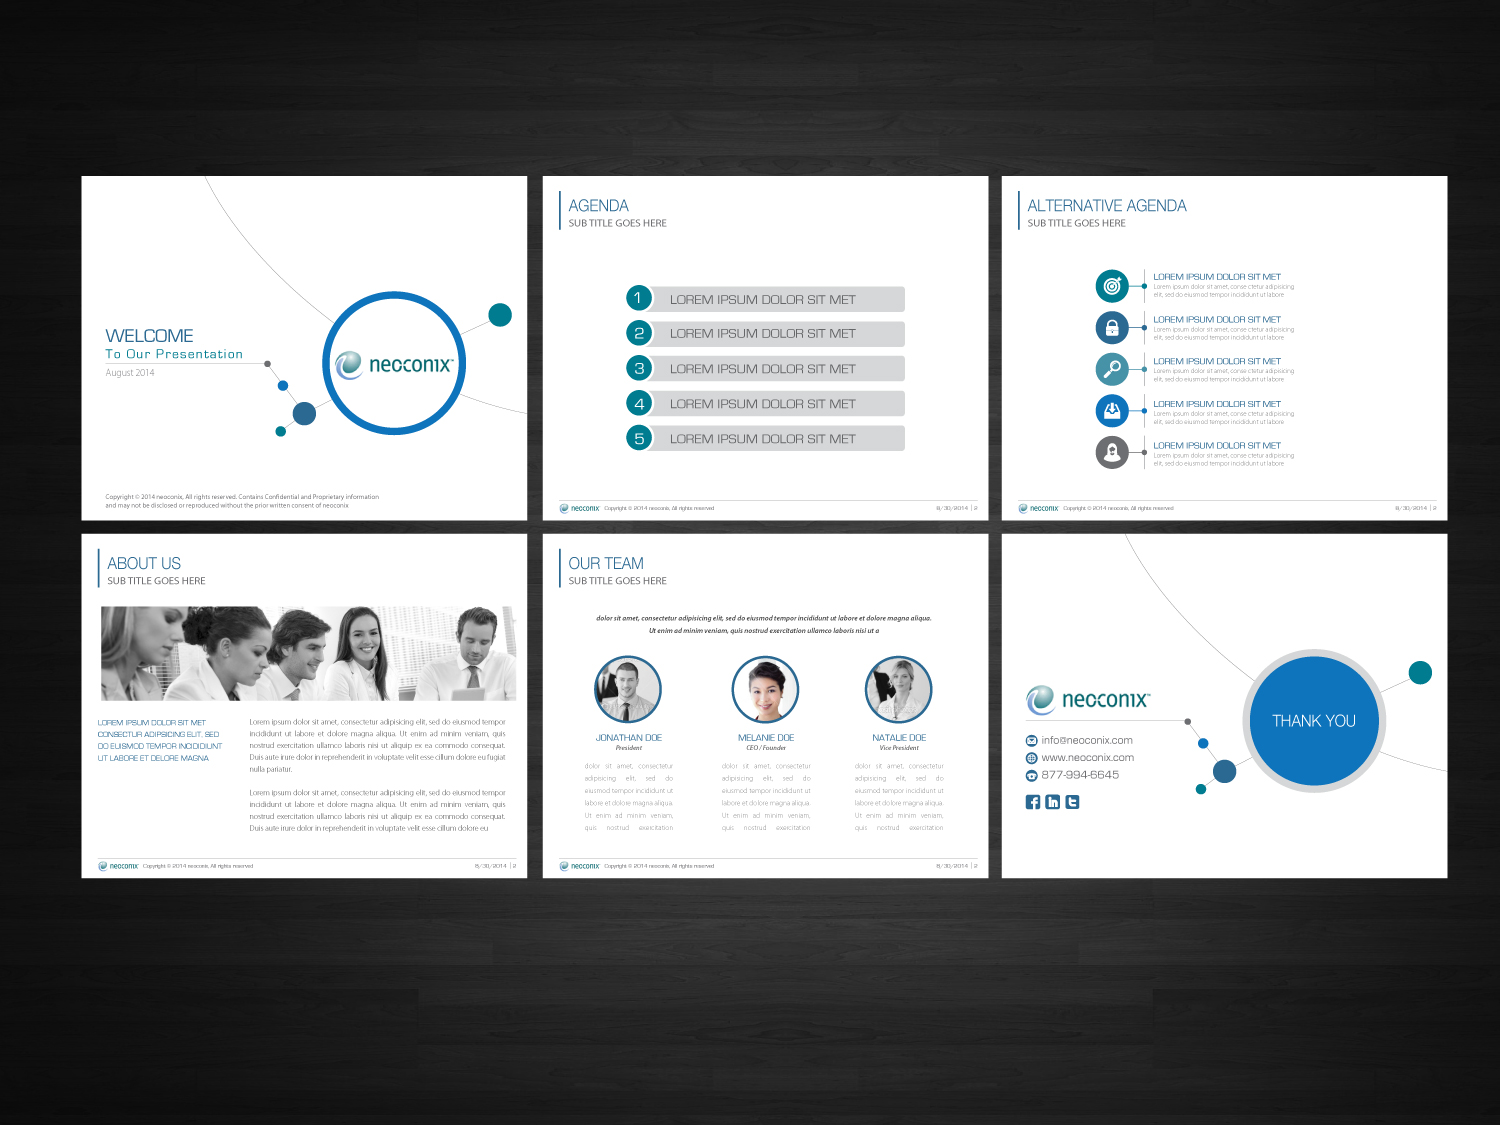 powerpoint design for jay aggarwalnila | design #4408385, Modern powerpoint